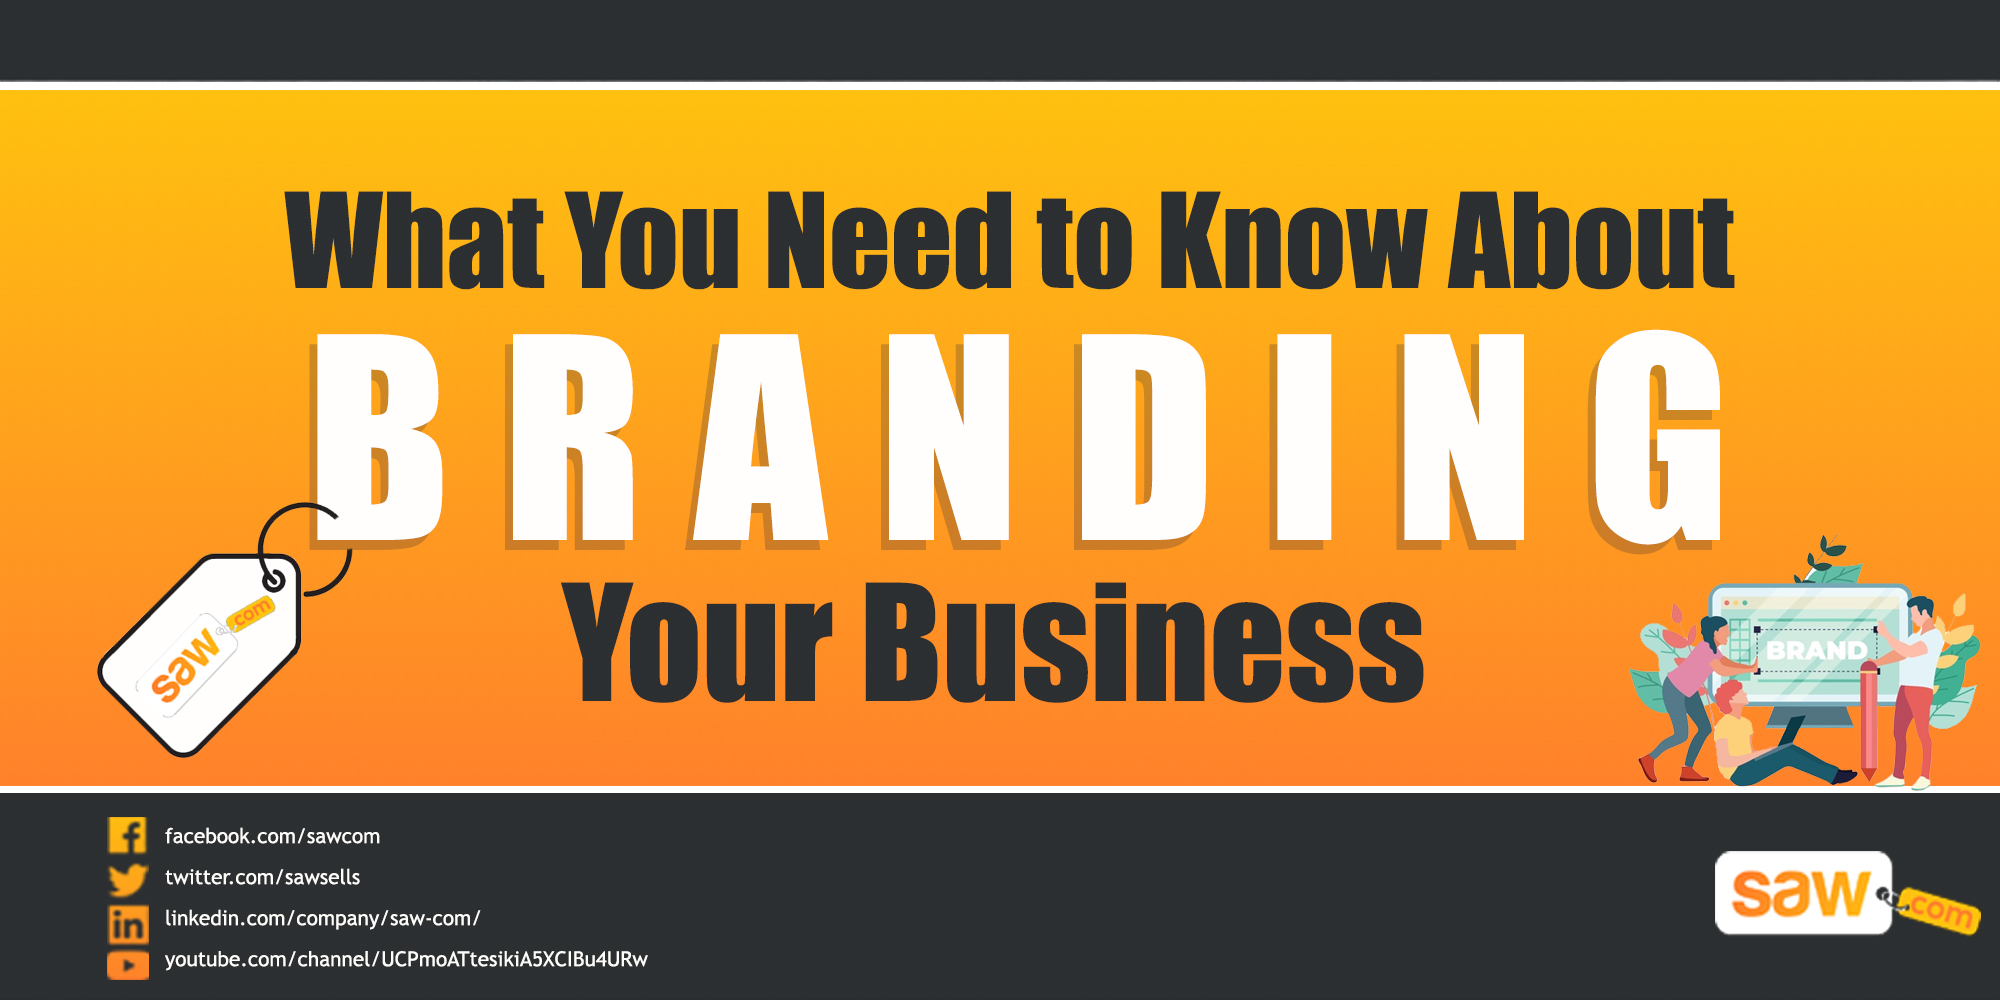 What You Need to Know About Branding Your Business